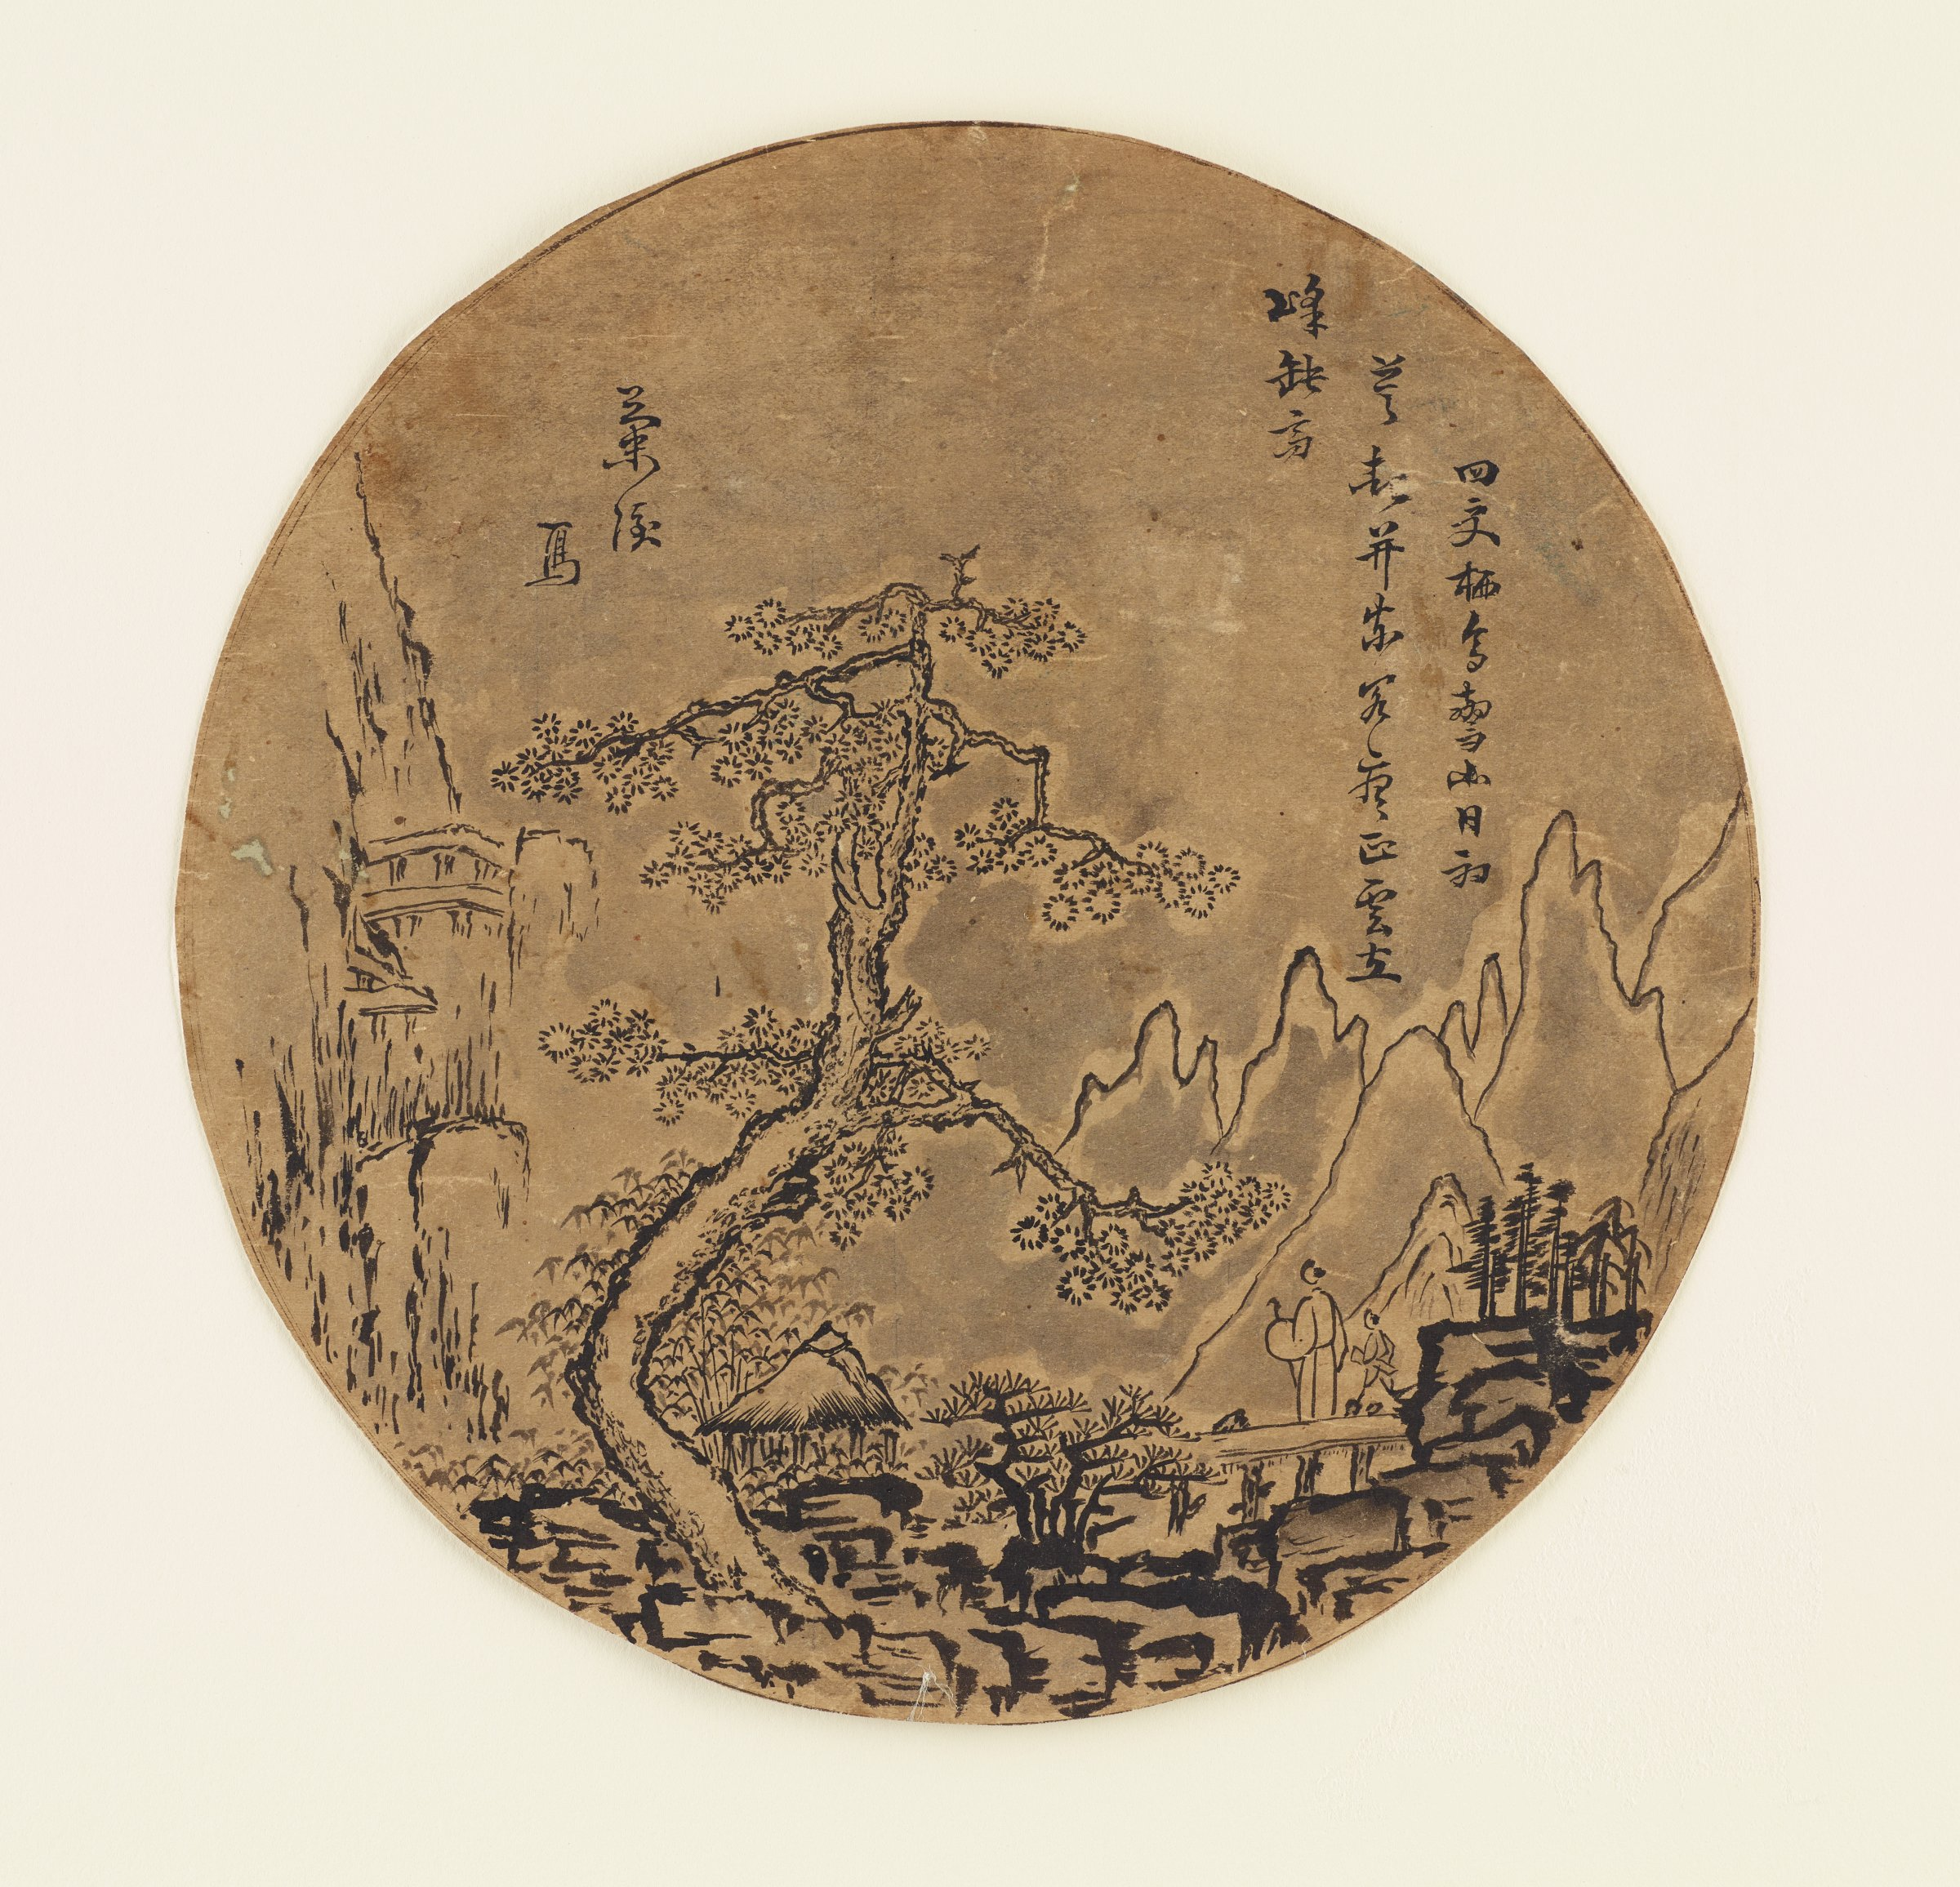 Landscape with Foot Travelers among Snowy Pines and Bamboo in circular fan format.